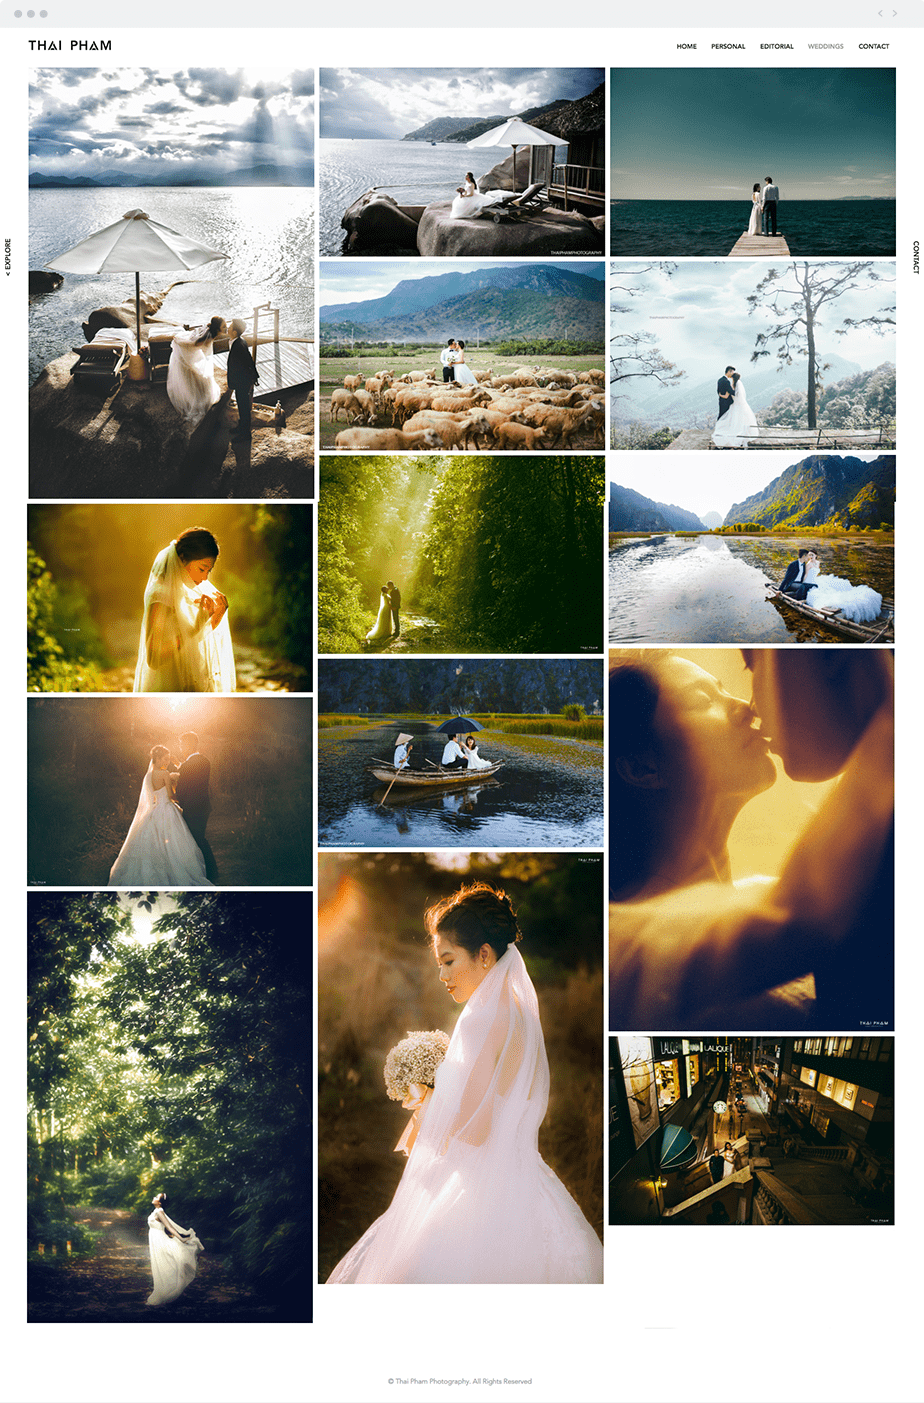 Stunning online portfolio by Wix wedding photographer Thai Pham